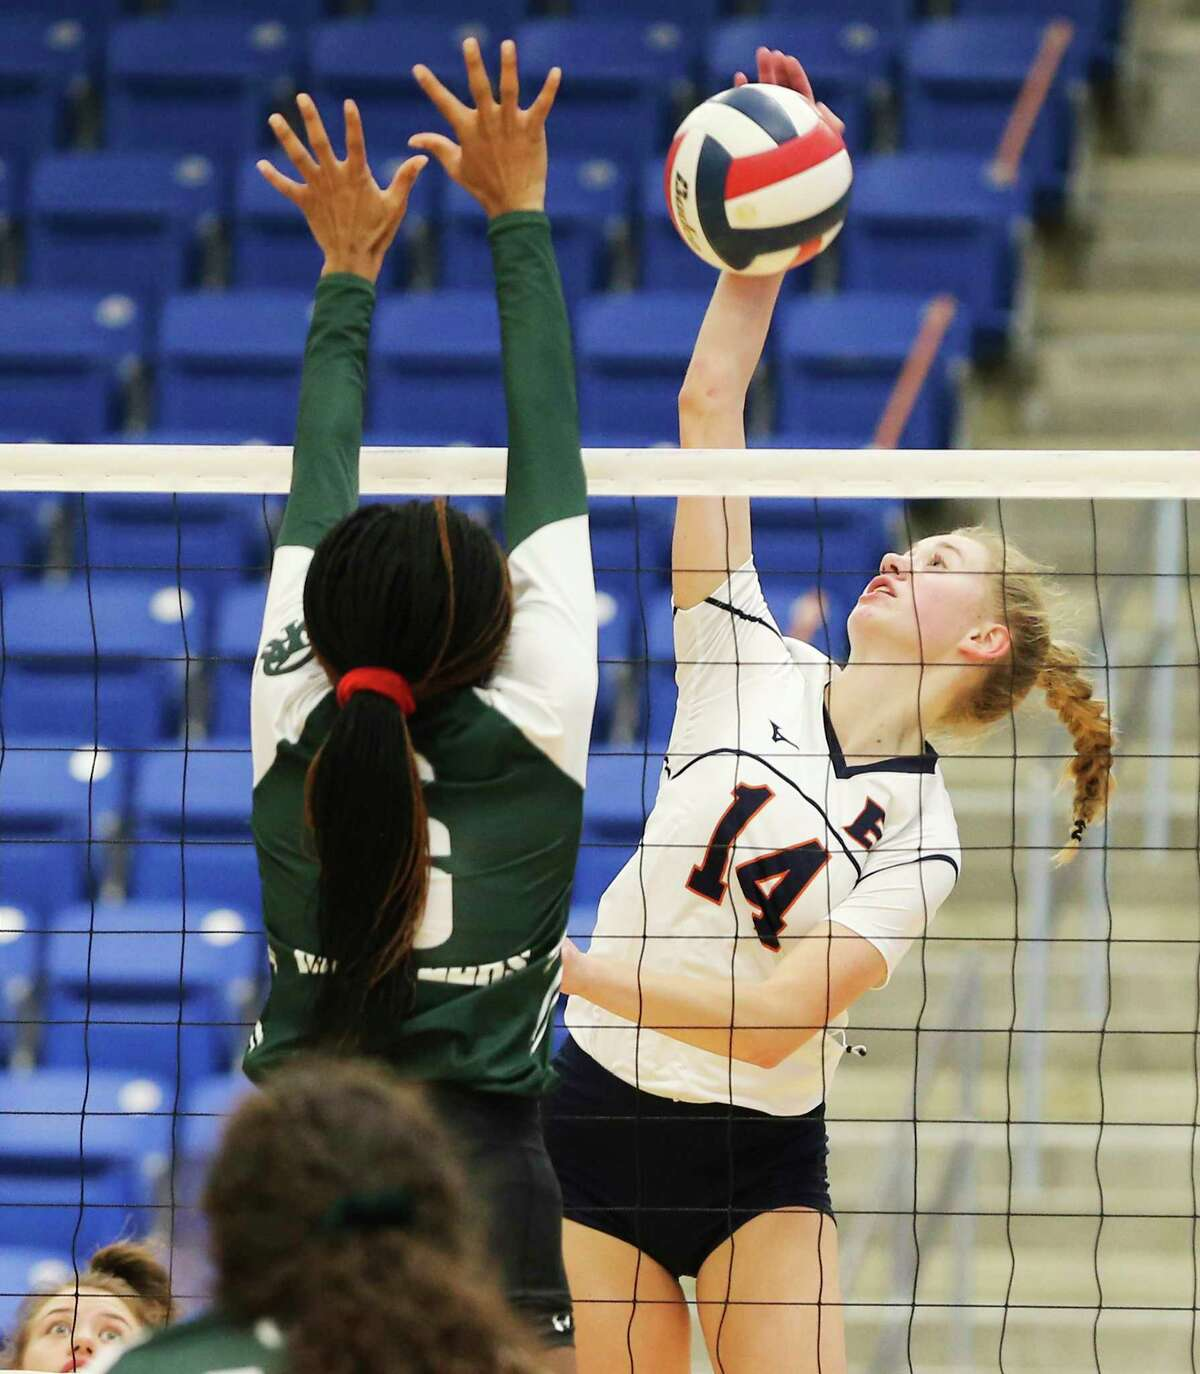 Brandeis' Emma Halstead (14) against Reagan's Chichi Ozigbo (06) during their girls volleyball game at Northside Sports Gym on Tuesday, Sept. 29, 2020. The Broncos defeated the Rattlers, 4-1, to take the contest.